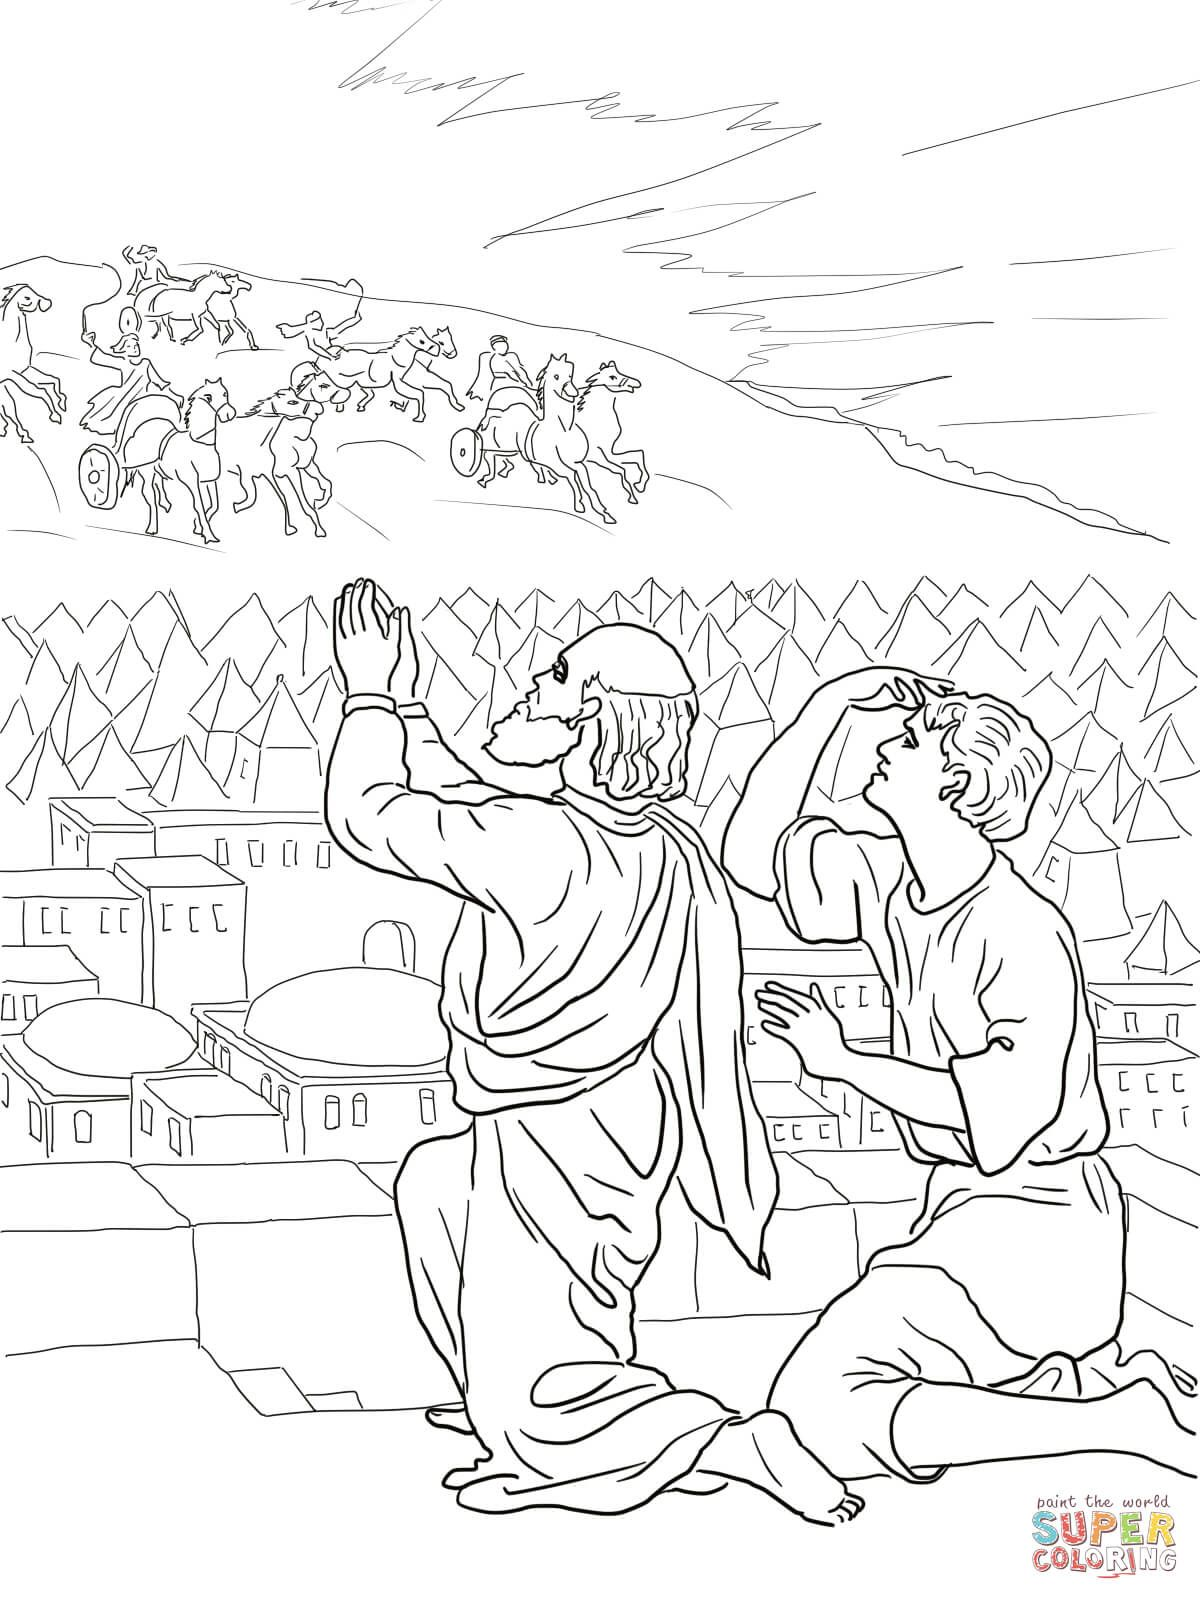 Elisha Fiery Army Coloring Page Free Printable Coloring Pages